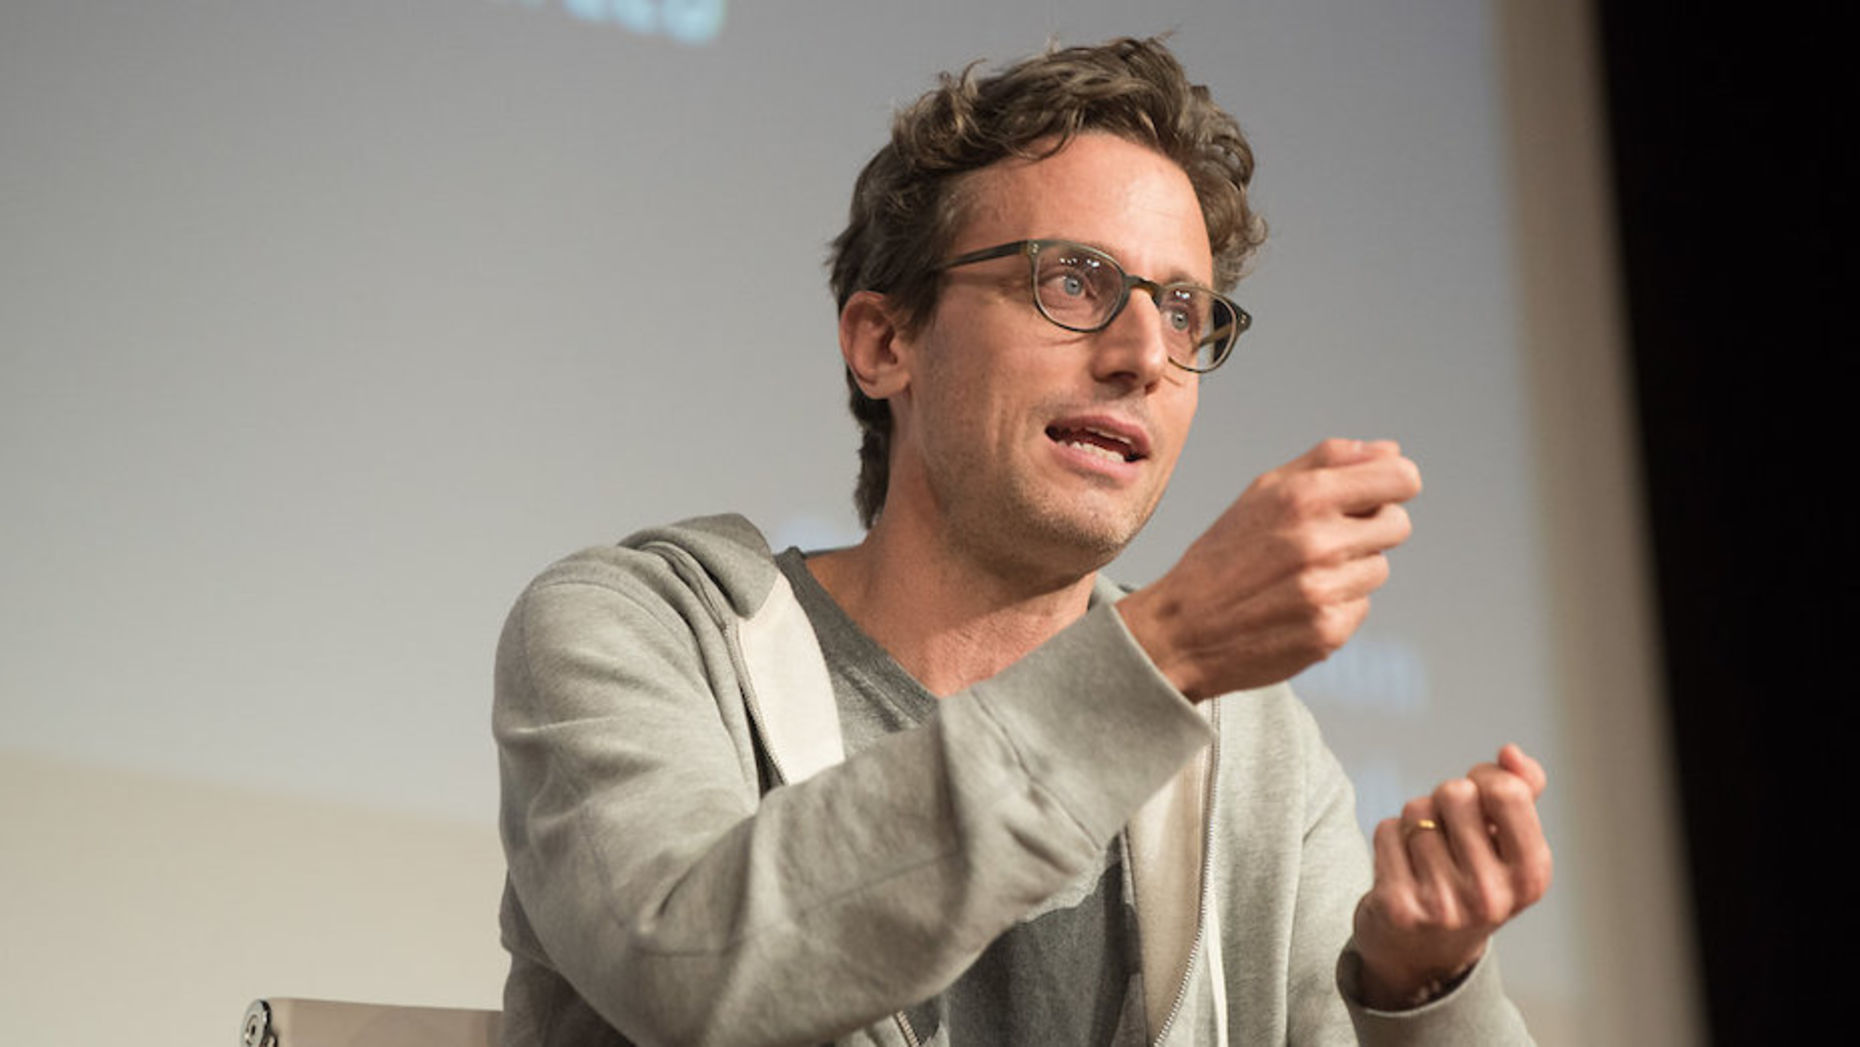 BuzzFeed CEO Jonah Peretti at 2017's Subscriber Summit.